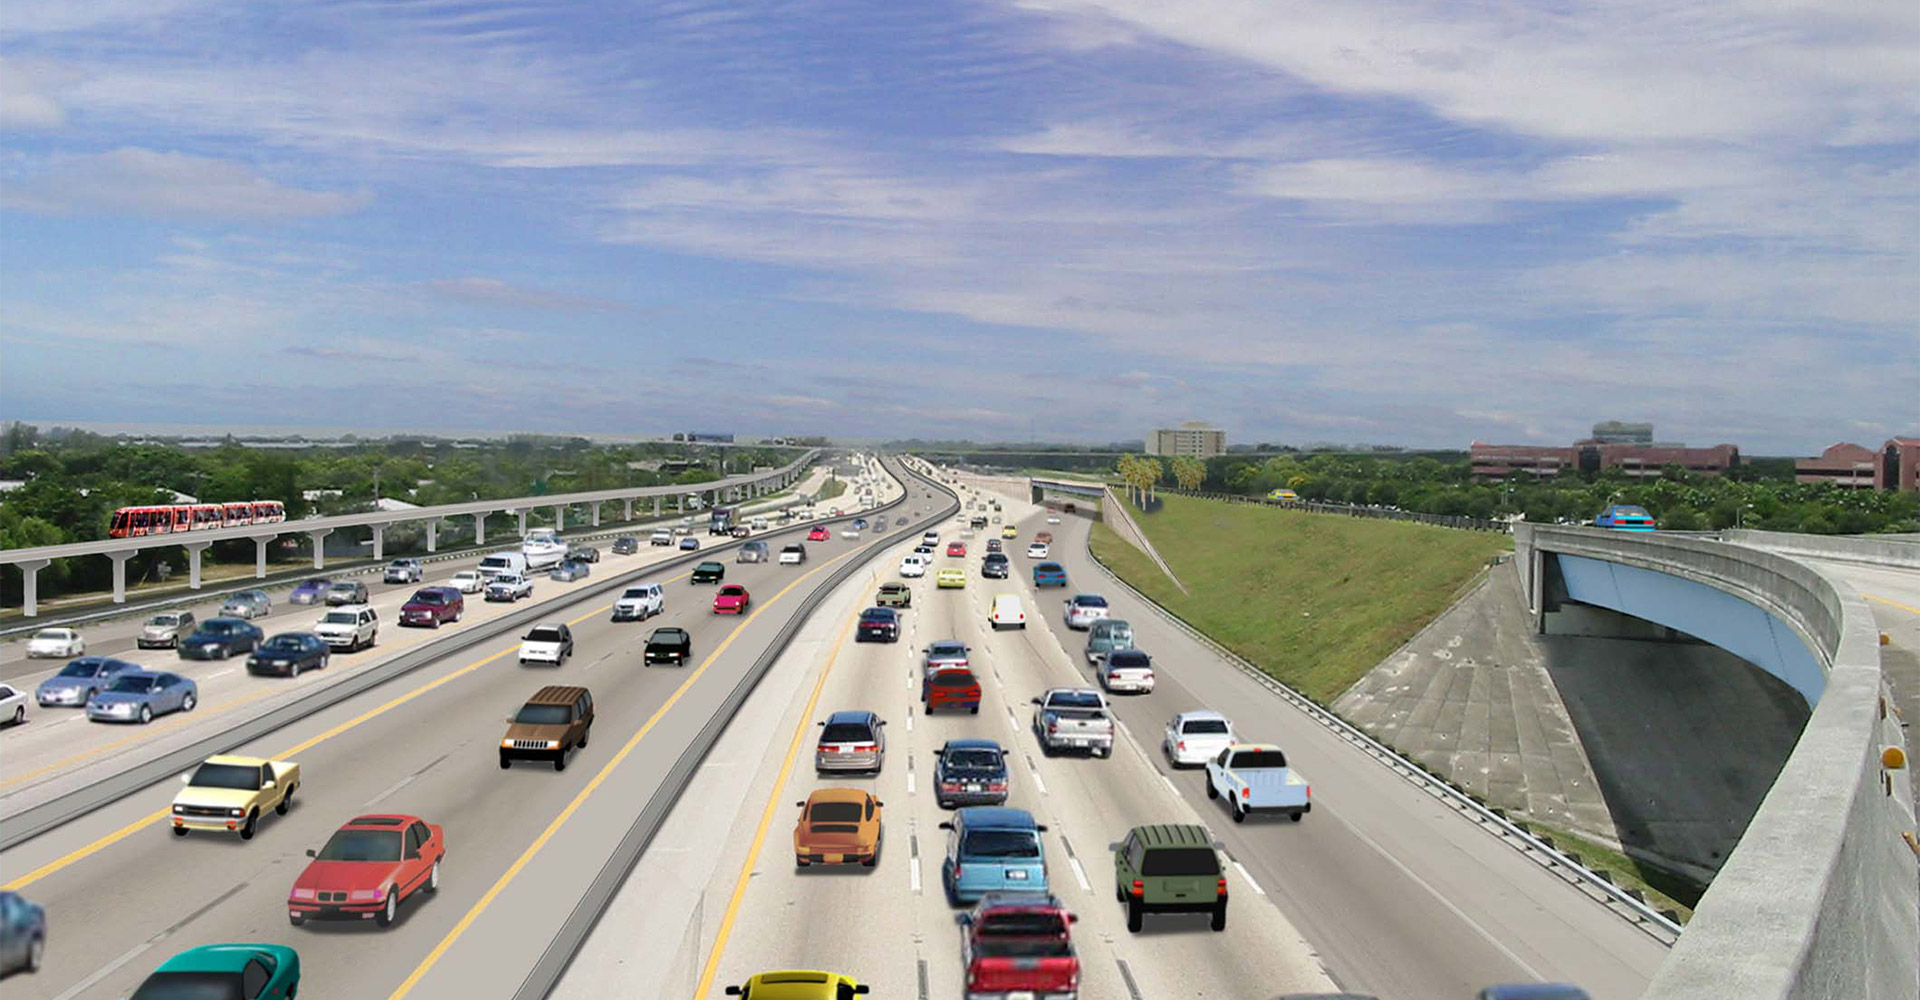 Visualization of I-595 with cars.